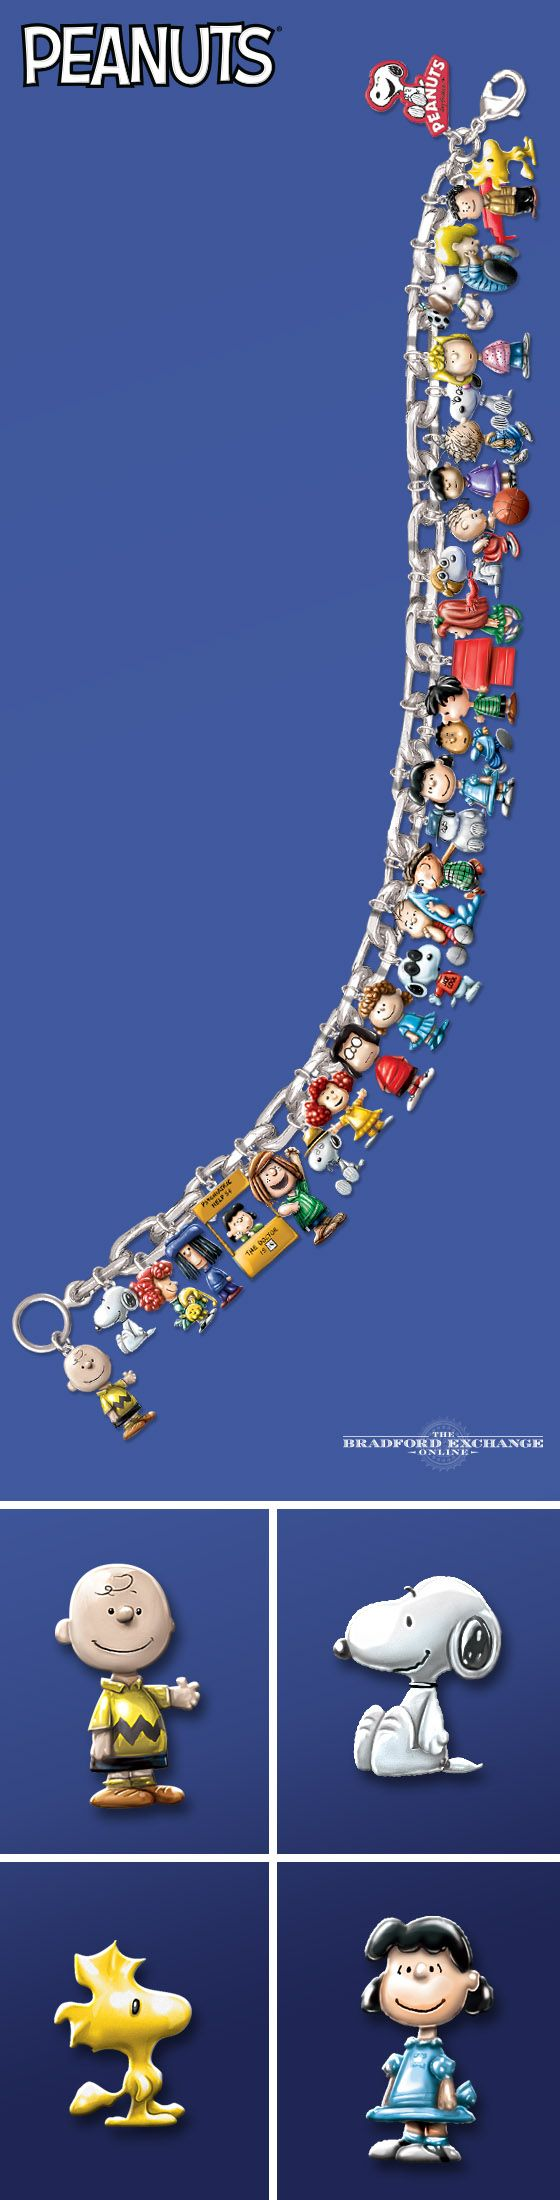 Wear The Ultimate Peanuts Tribute This First Of Its Kind Collector S Edition Charm Bracelet Features 30 Handcrafted Enamel Charms With Some Your